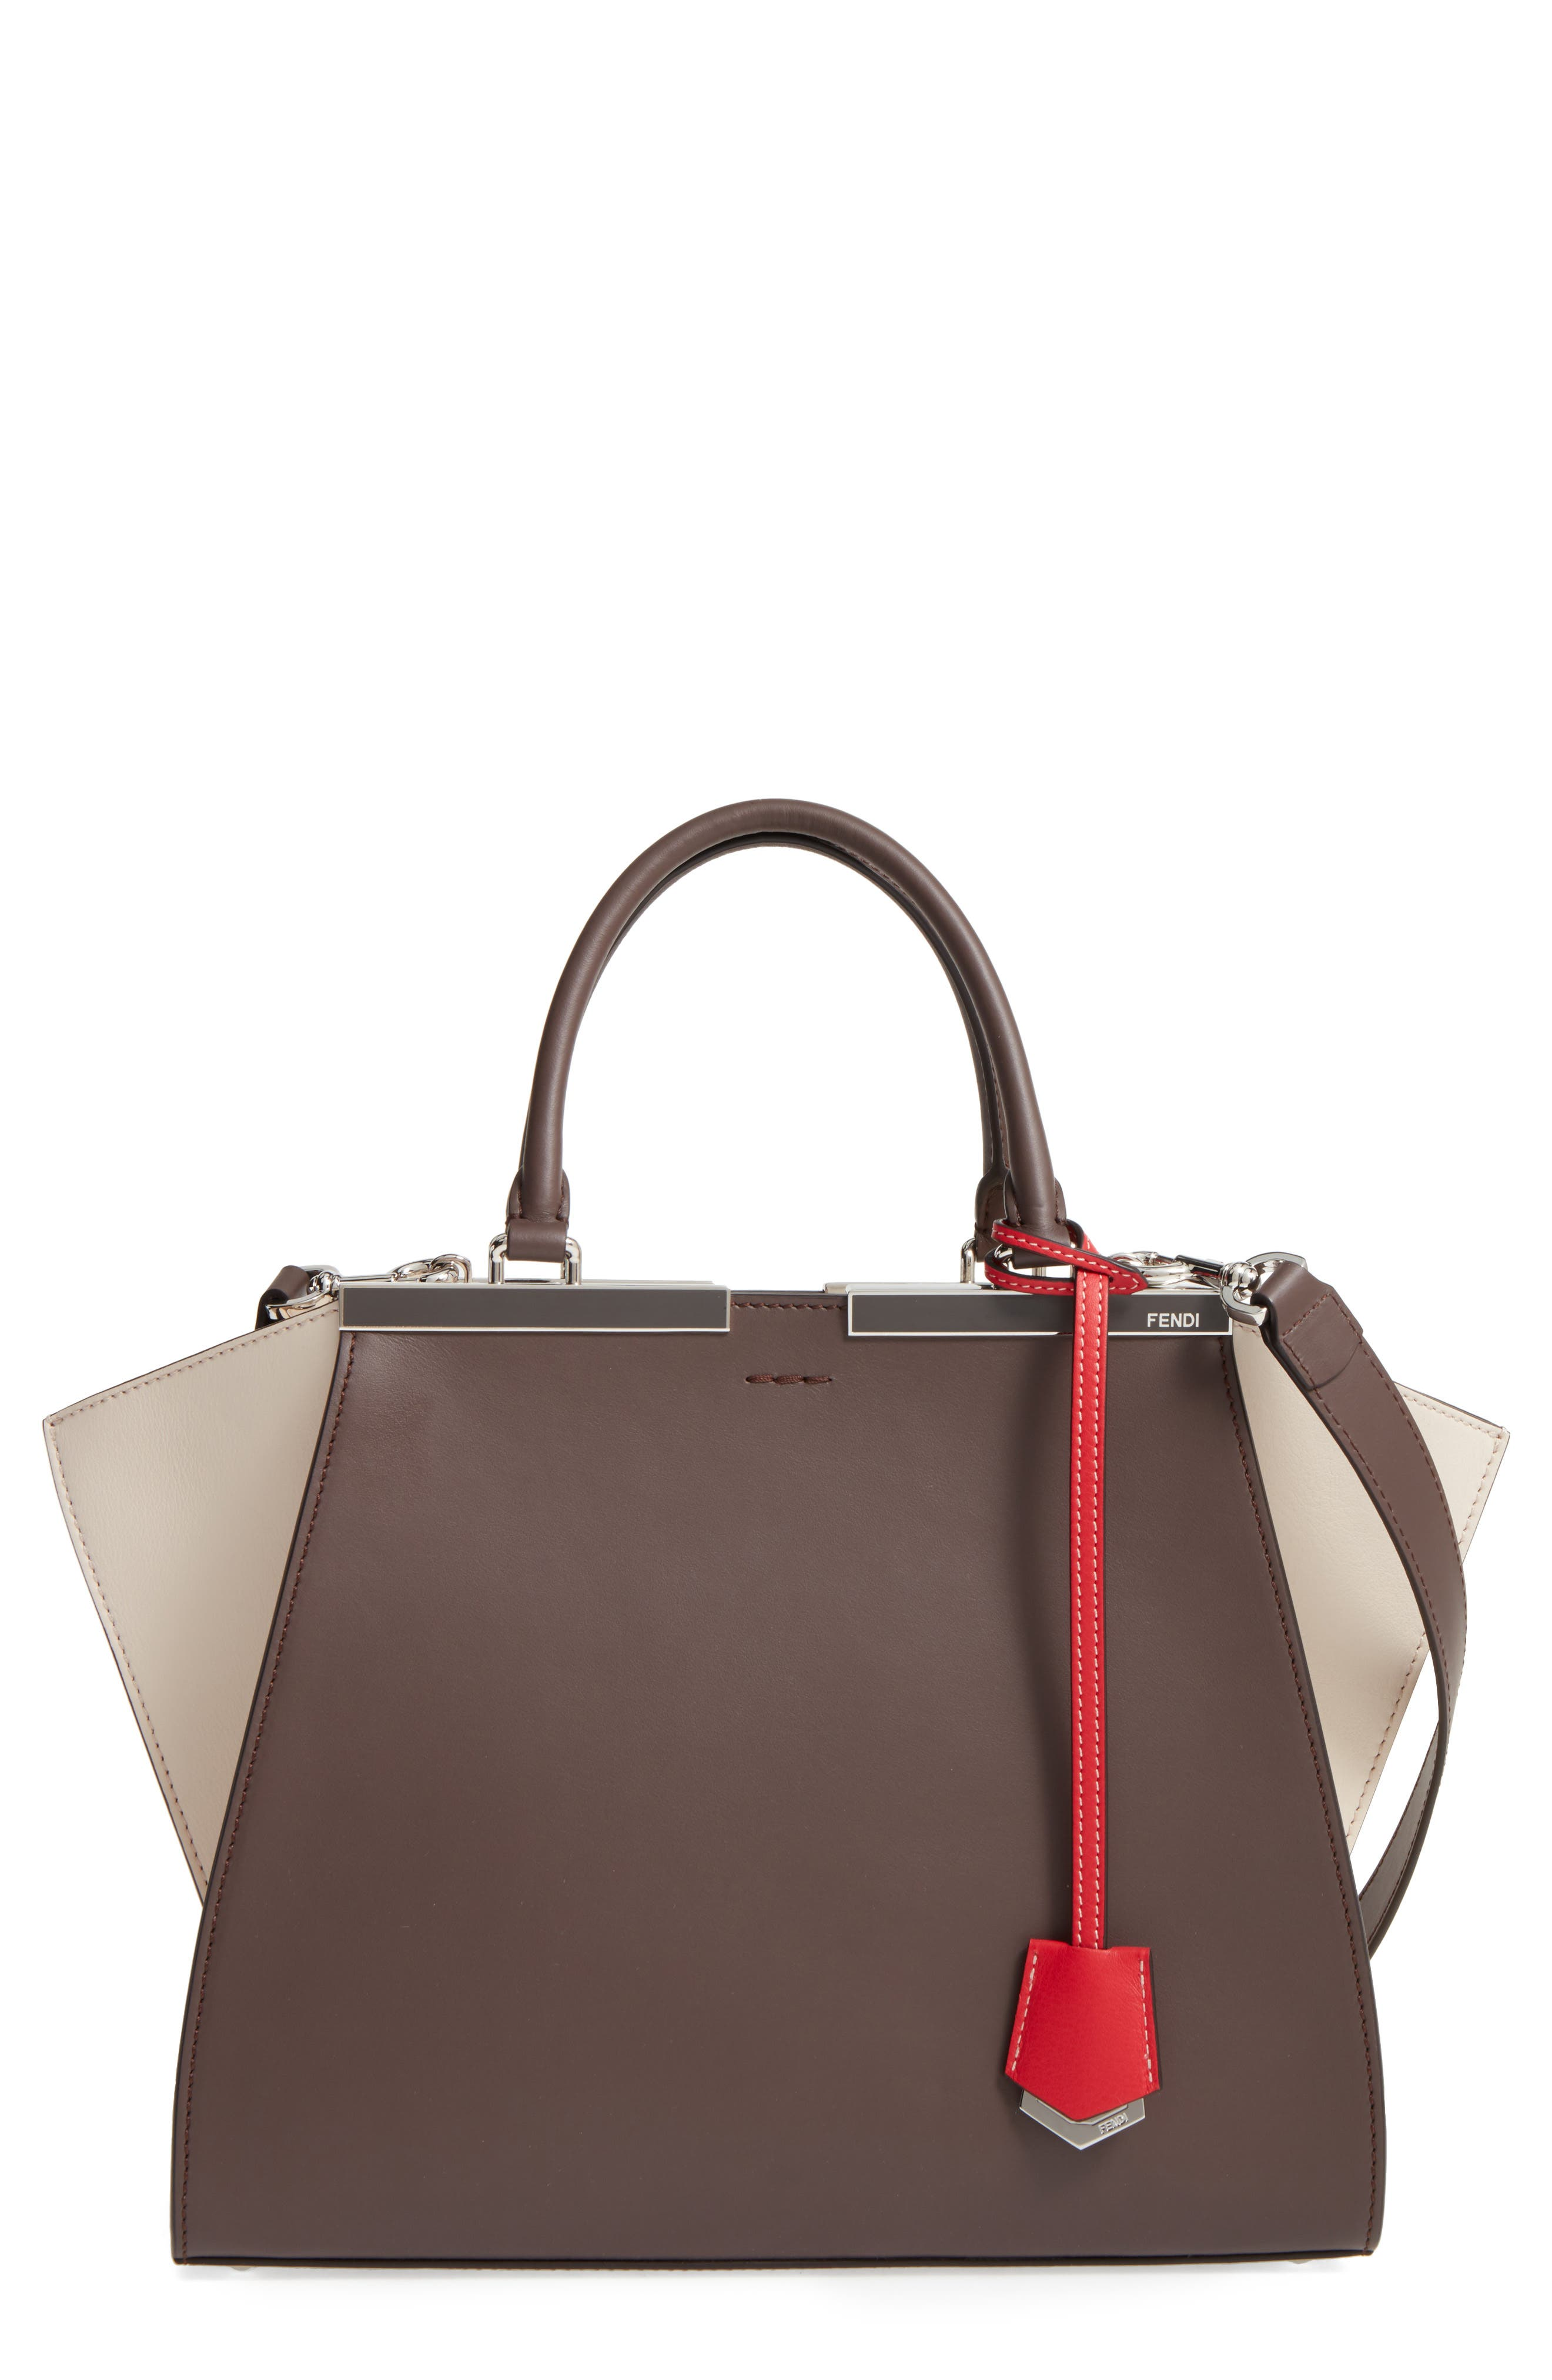 FENDI 3Jours Colorblock Calfskin Leather Shopper